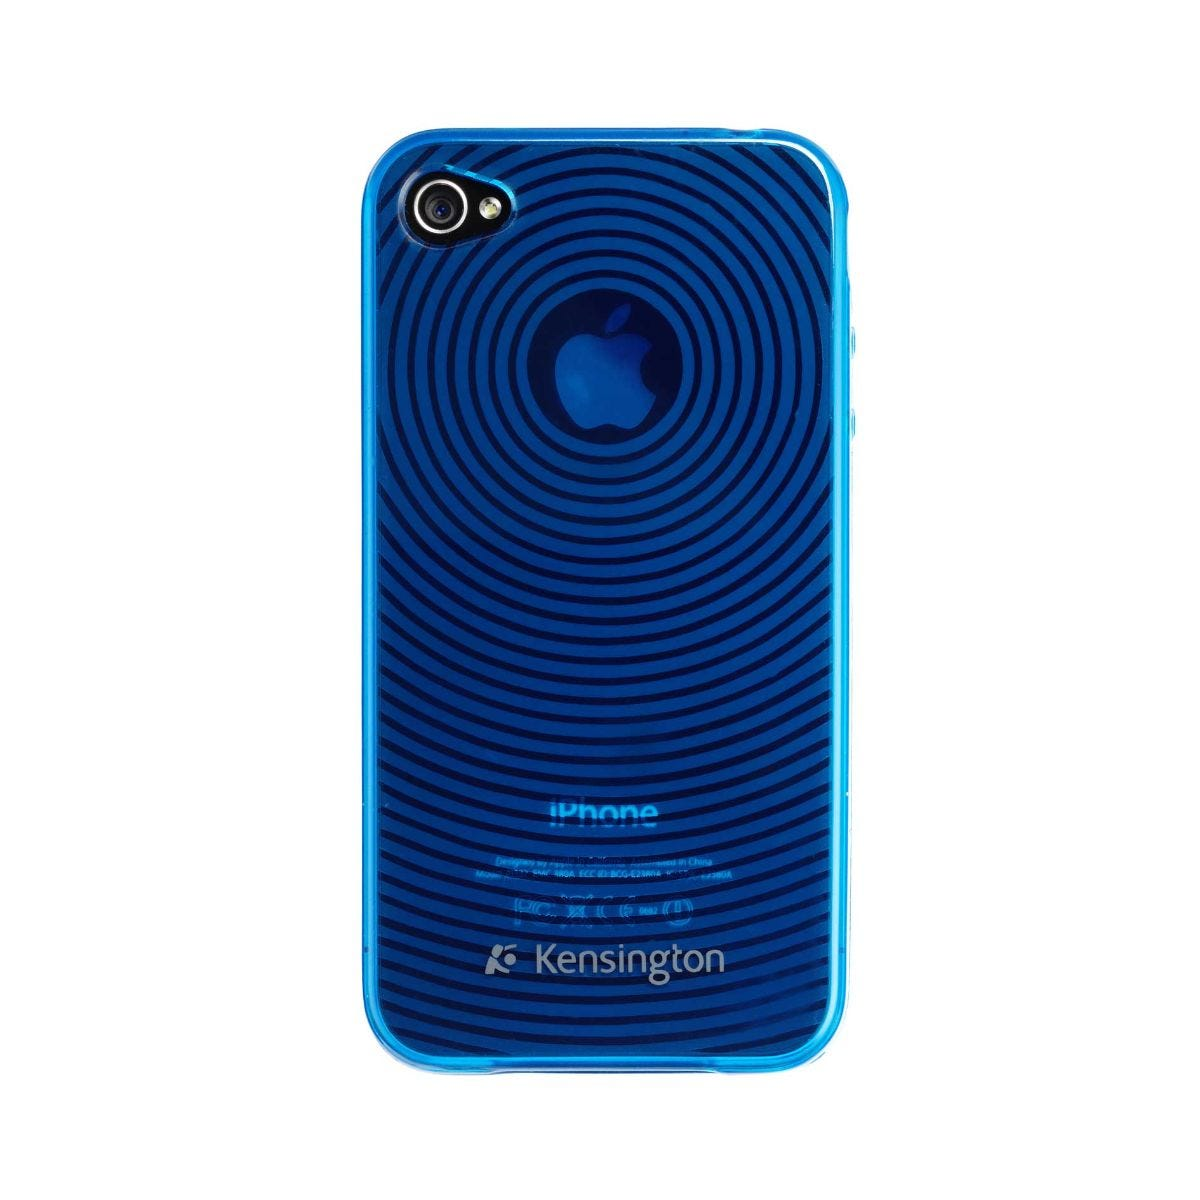 Kensington iPhone 4 Grip Case, Blue